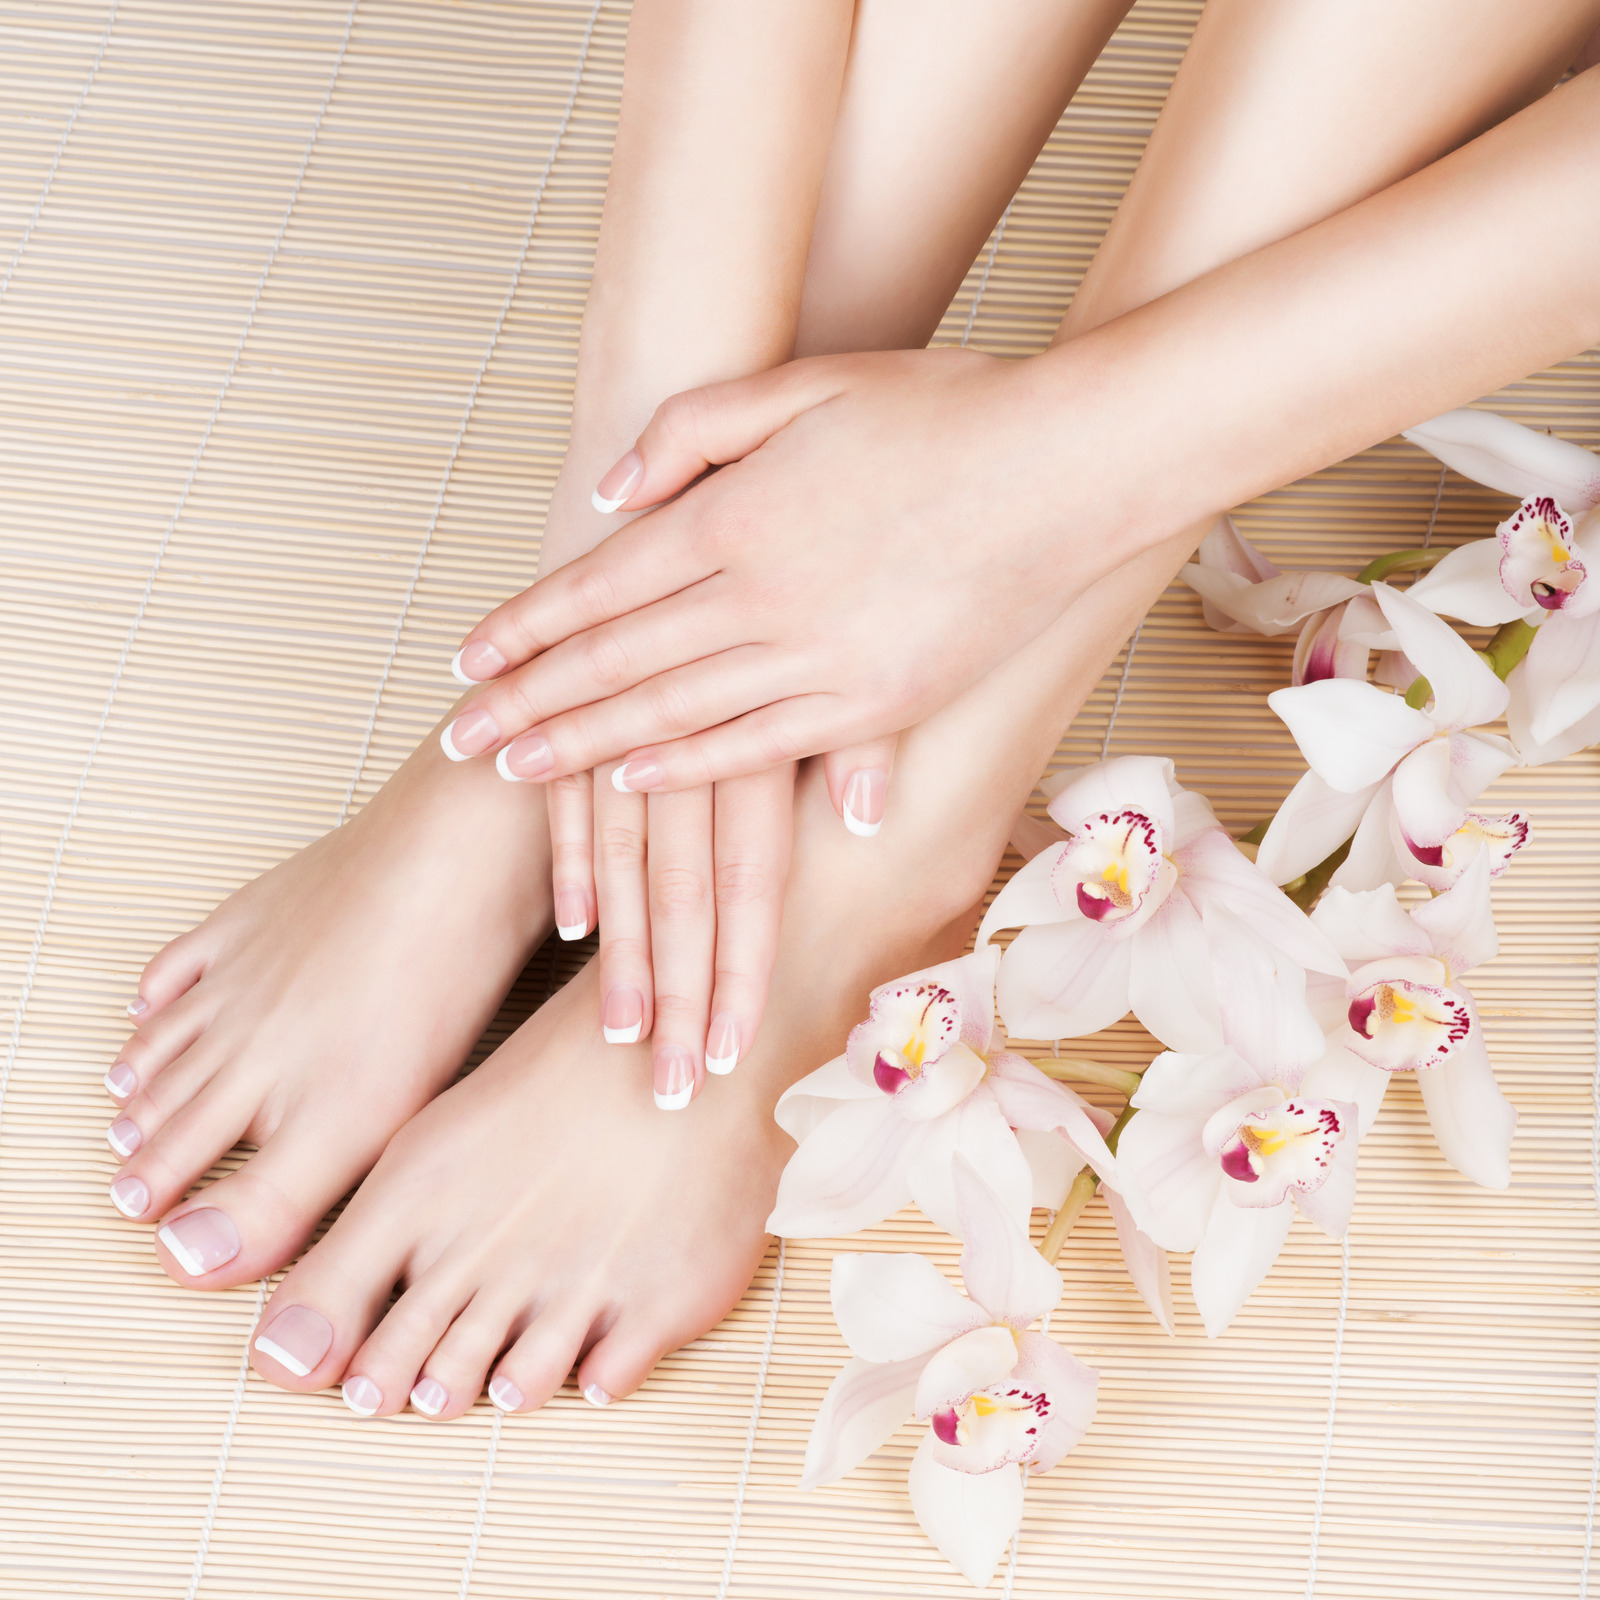 Our Nail Salon offers special pedicure with healing treatments